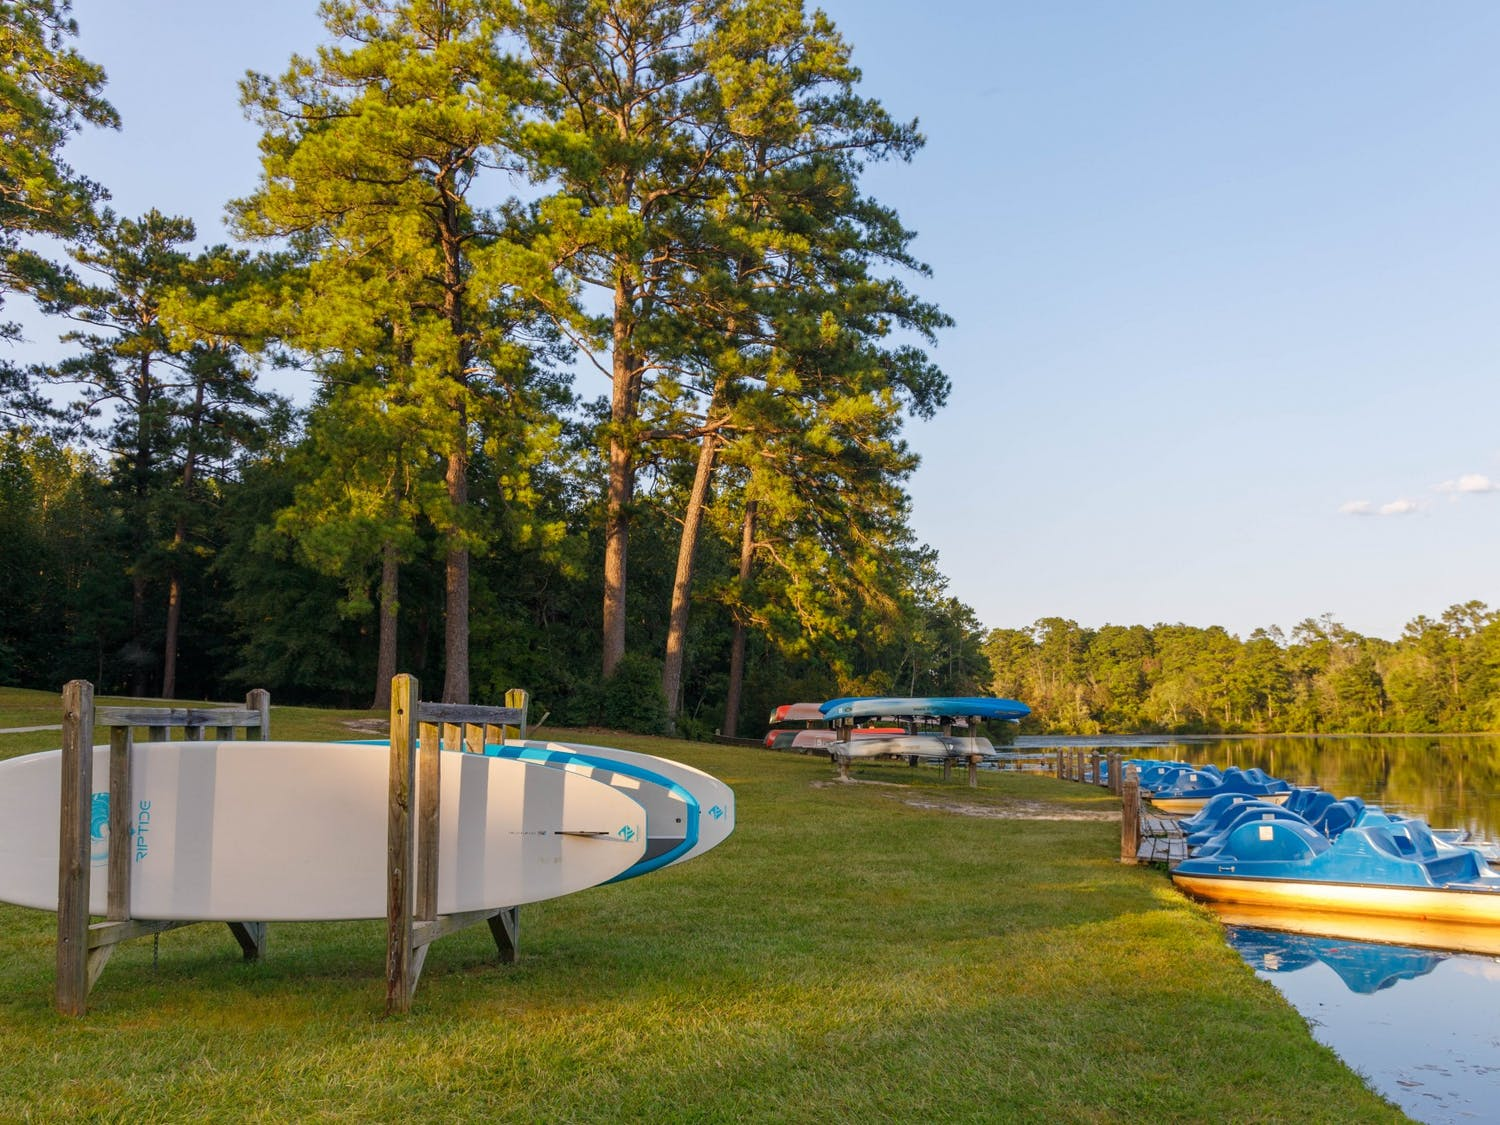 Paddle boats, canoes and water boards can be found on the side of the pond at Sesquicentennial State Park. The park also offers many spaces to hike, camp or relax.